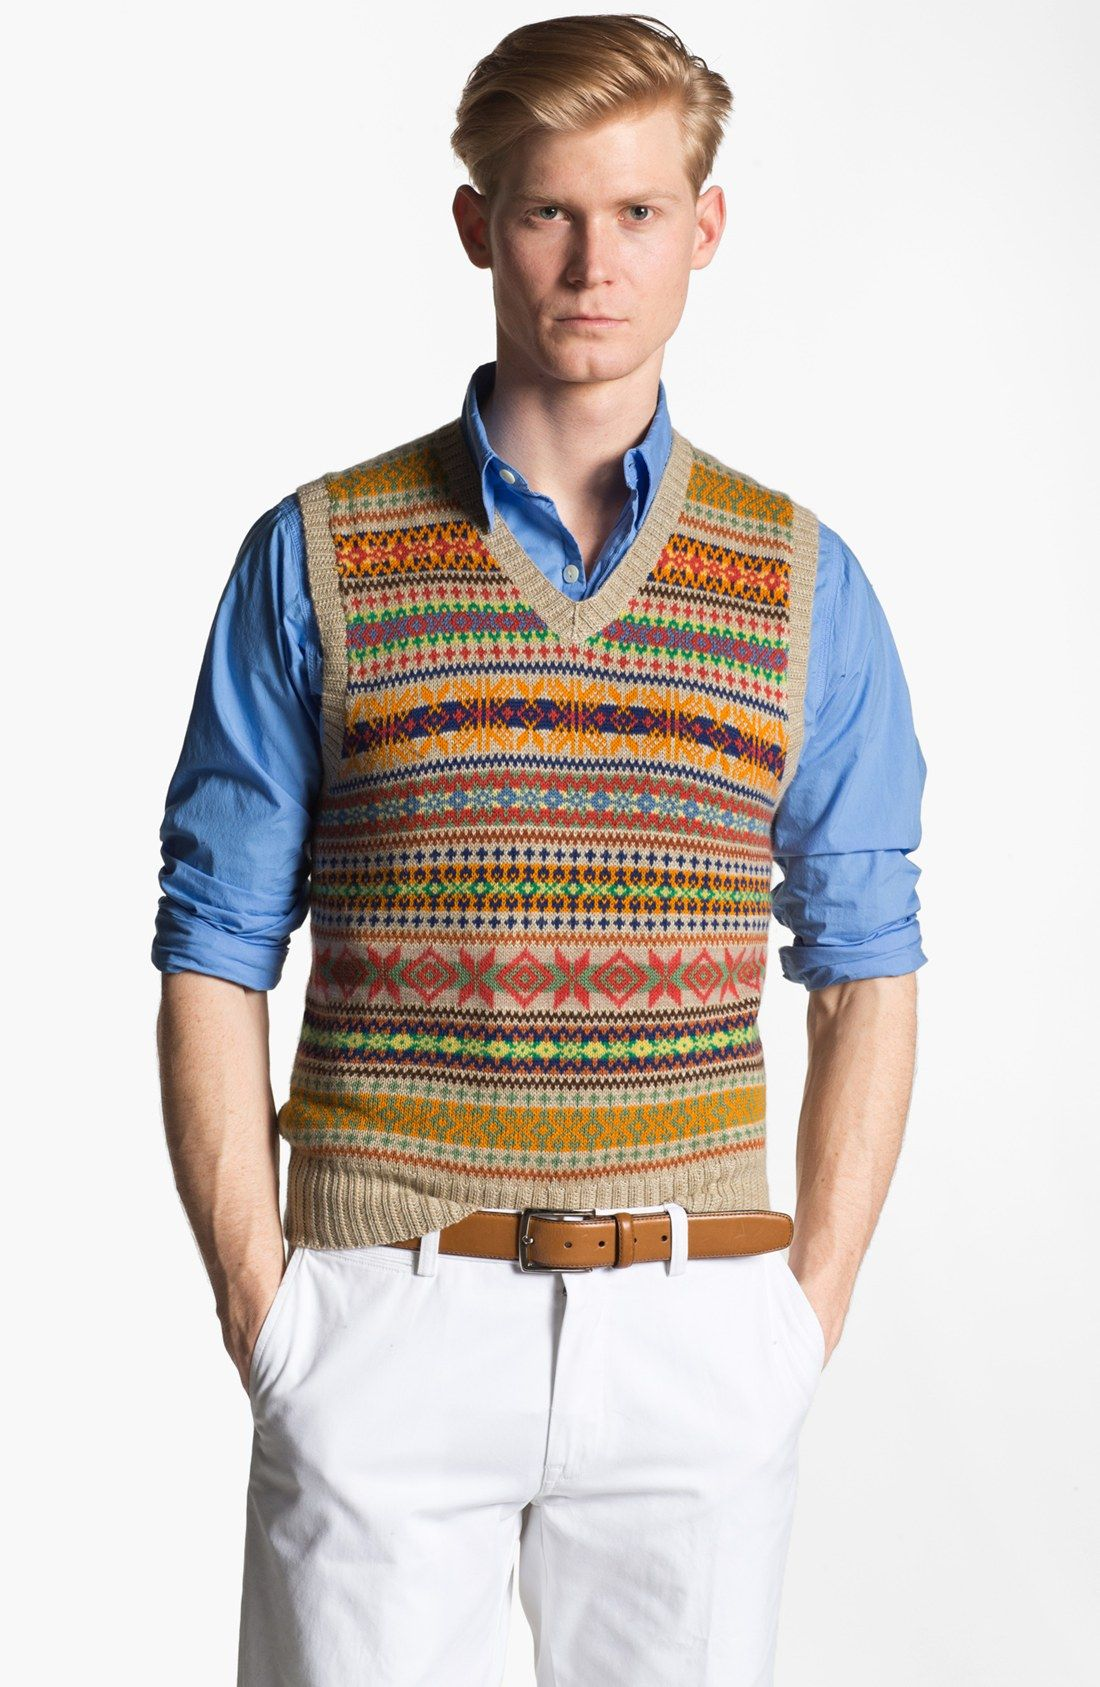 ebee4039cdc0 Image result for fair isle vest | Wardrobe inspiration | Sweaters ...